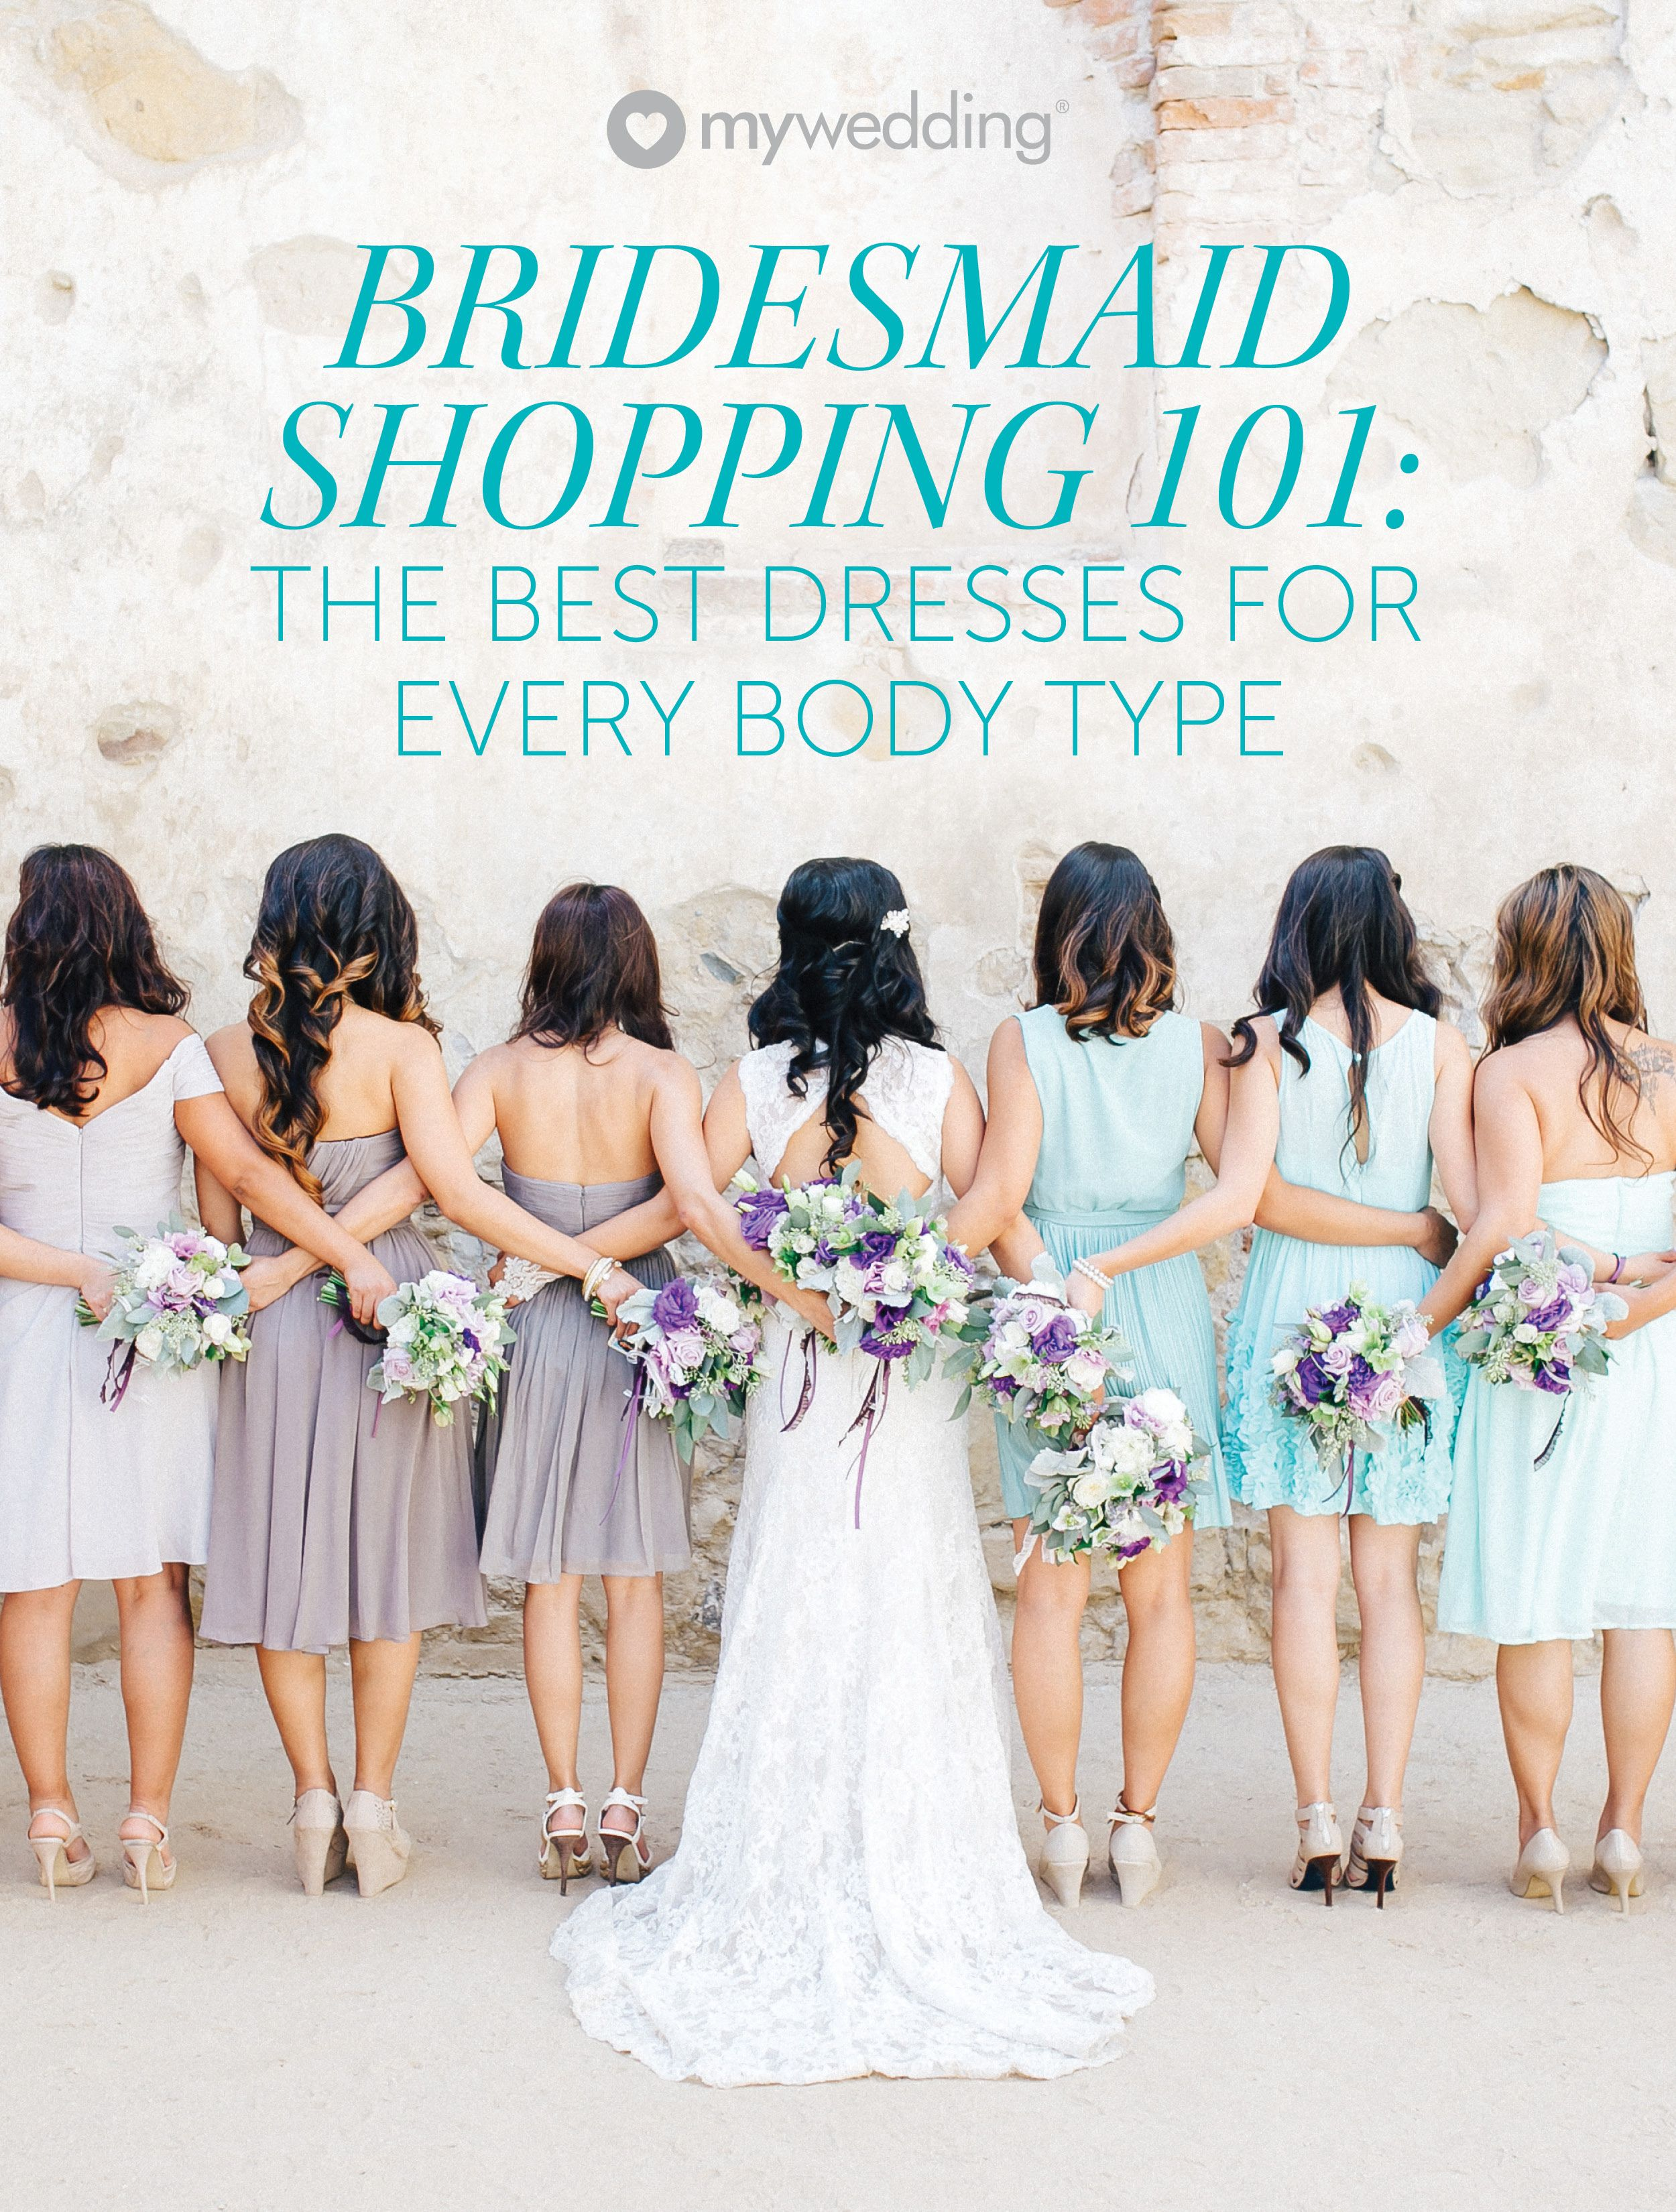 Find The Perfect Bridesmaid Dresses For Your Body Type Mywedding Bridesmaid Curvy Bridesmaid Dresses Bridesmaid Dresses